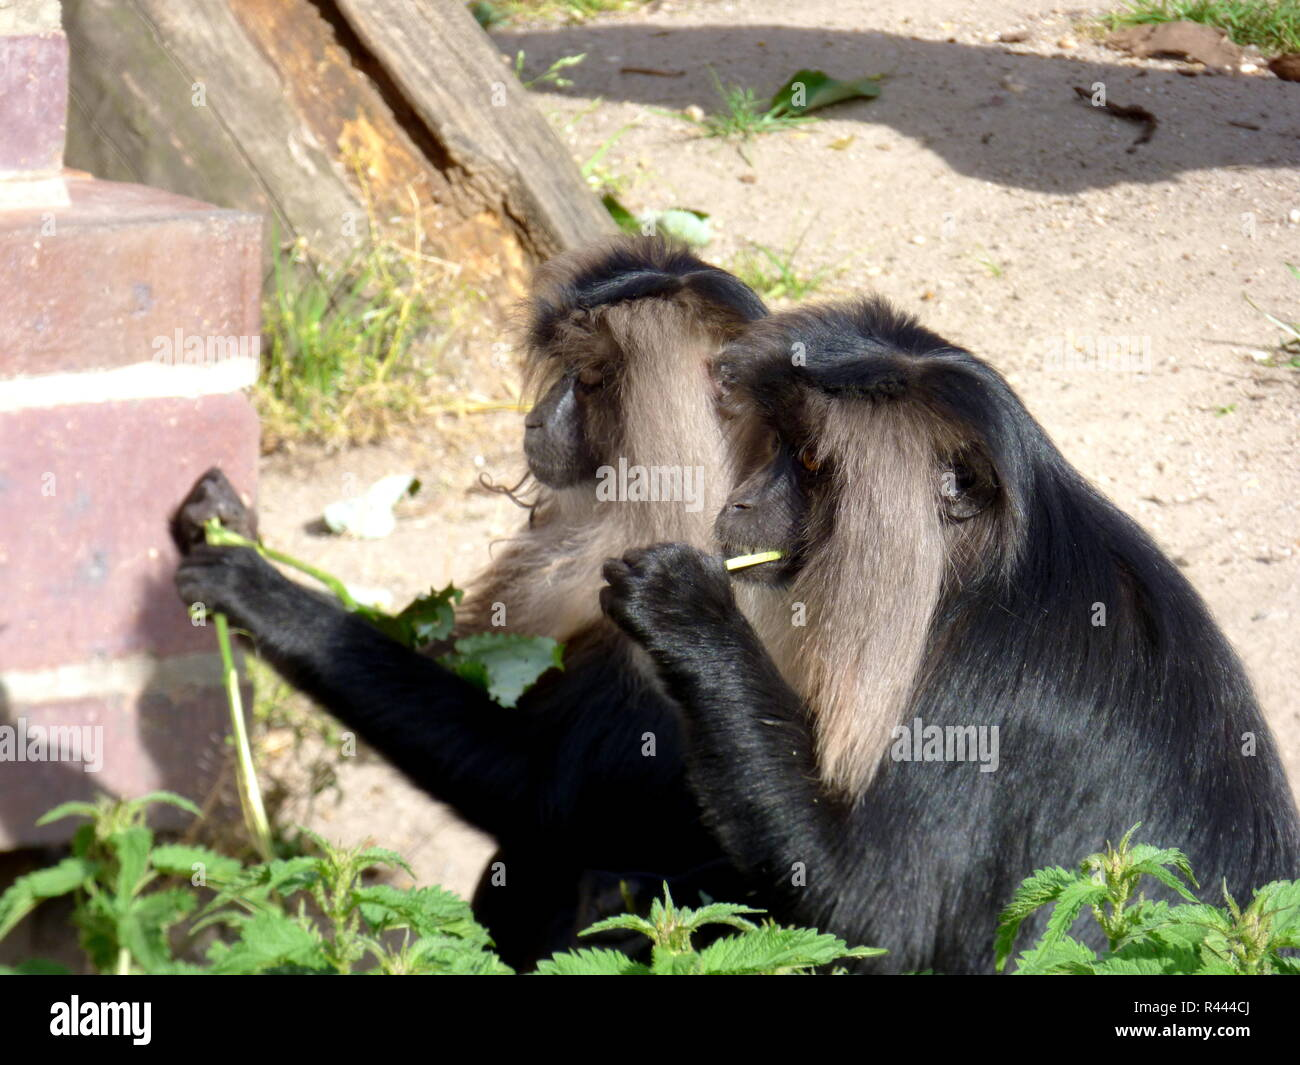 monkeys at lunchtime! Stock Photo